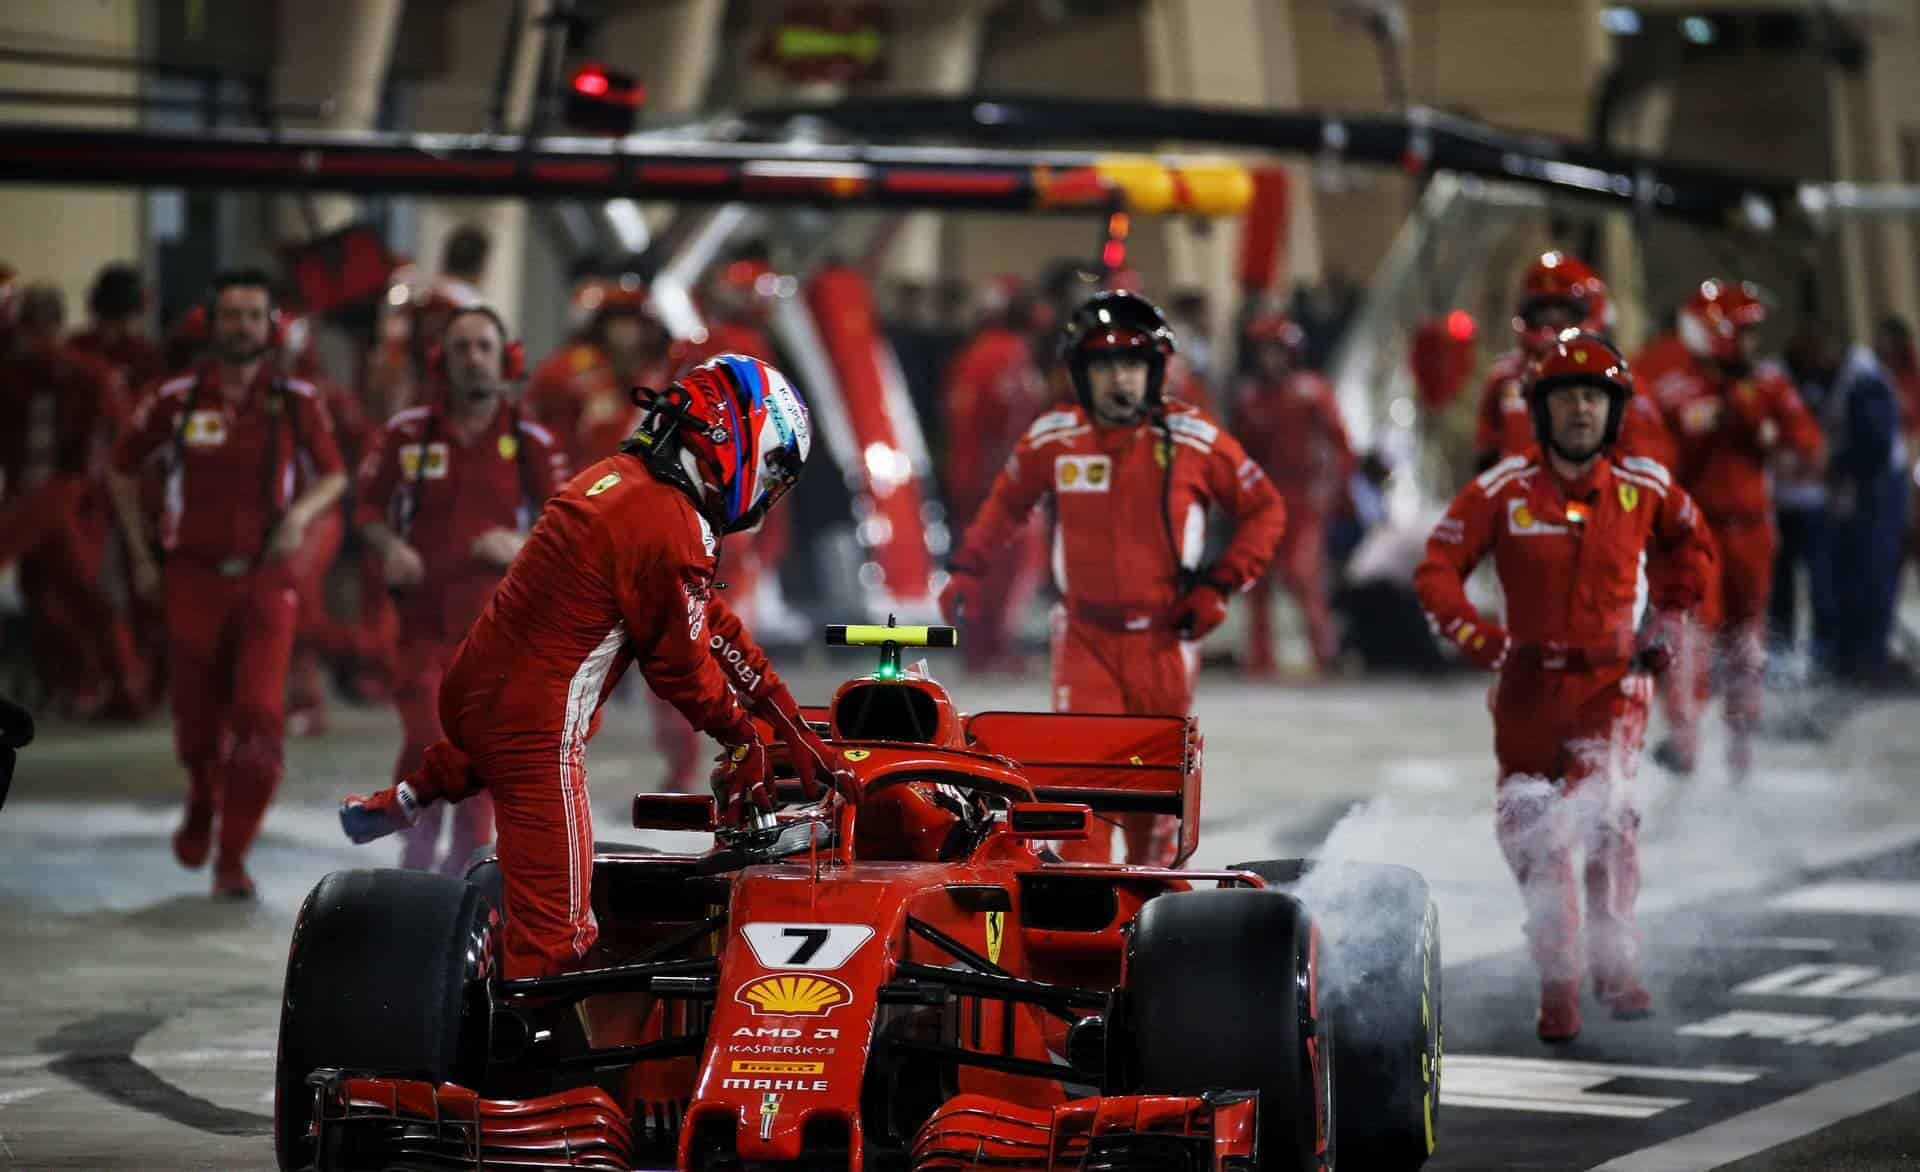 Kimi Raikkonen Ferrari SF71H Bahrain GP F1 2018 retires pitstop wheel mechanic Photo Ferrari